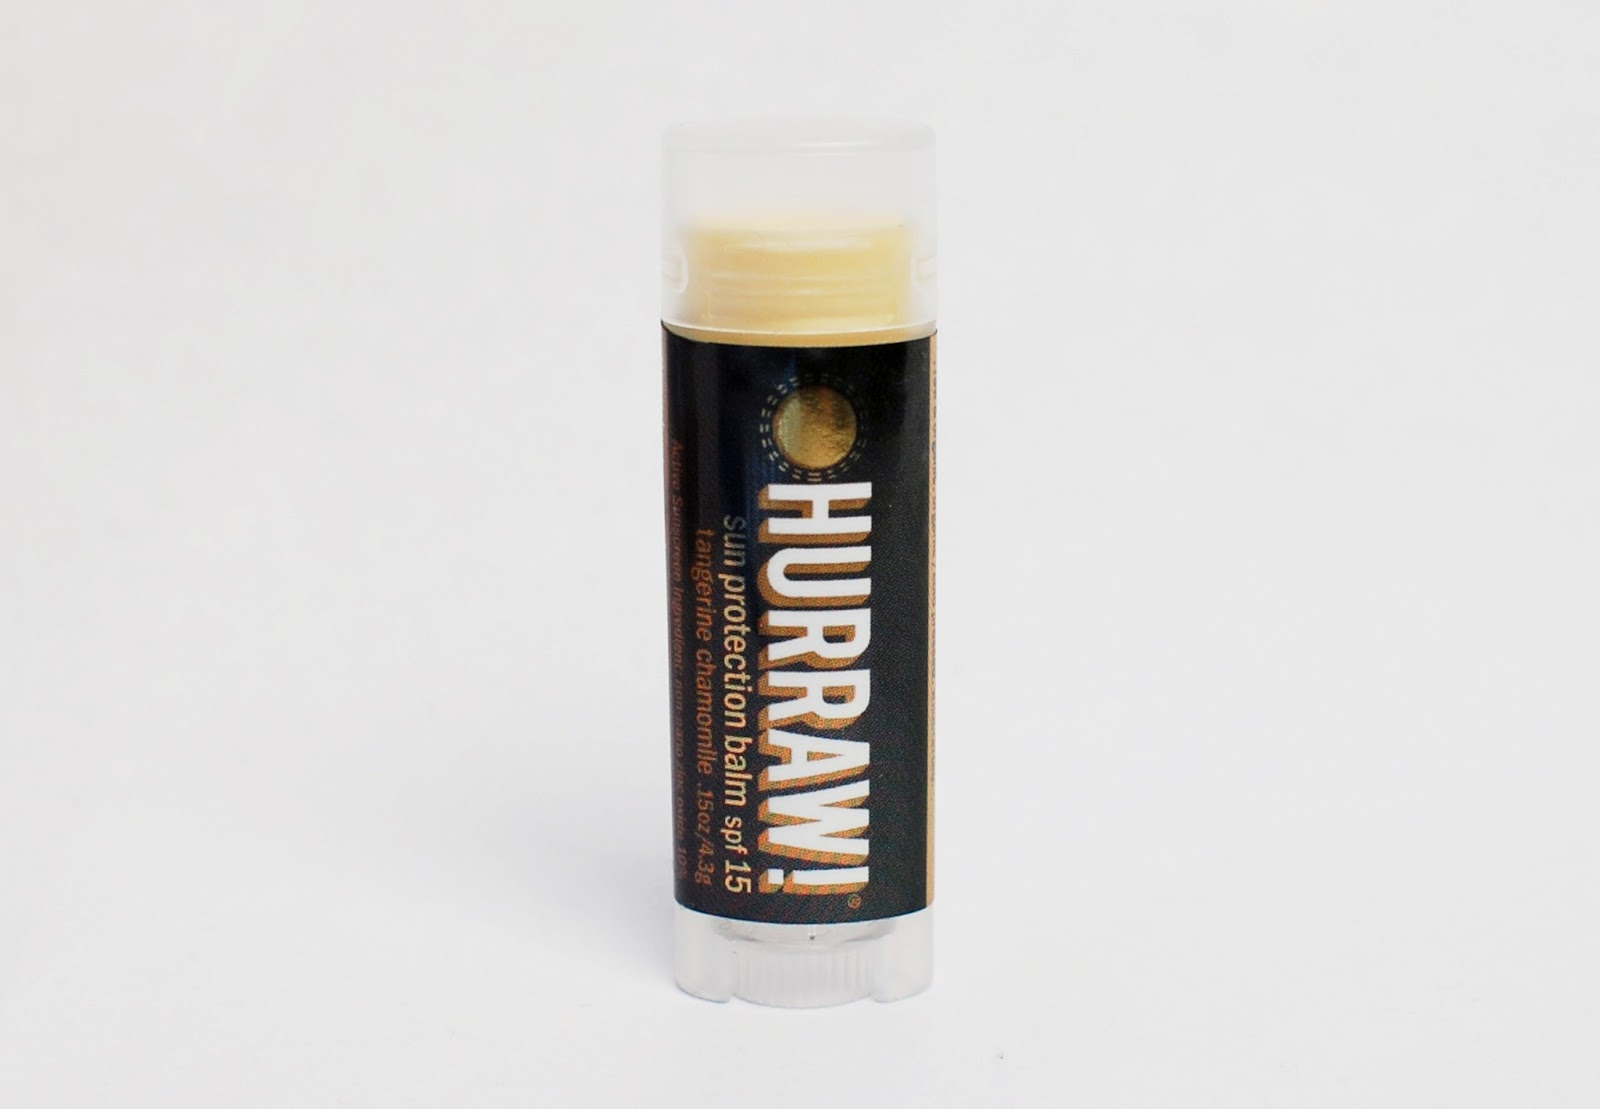 Hurraw! Sun Protection Balm spf 15